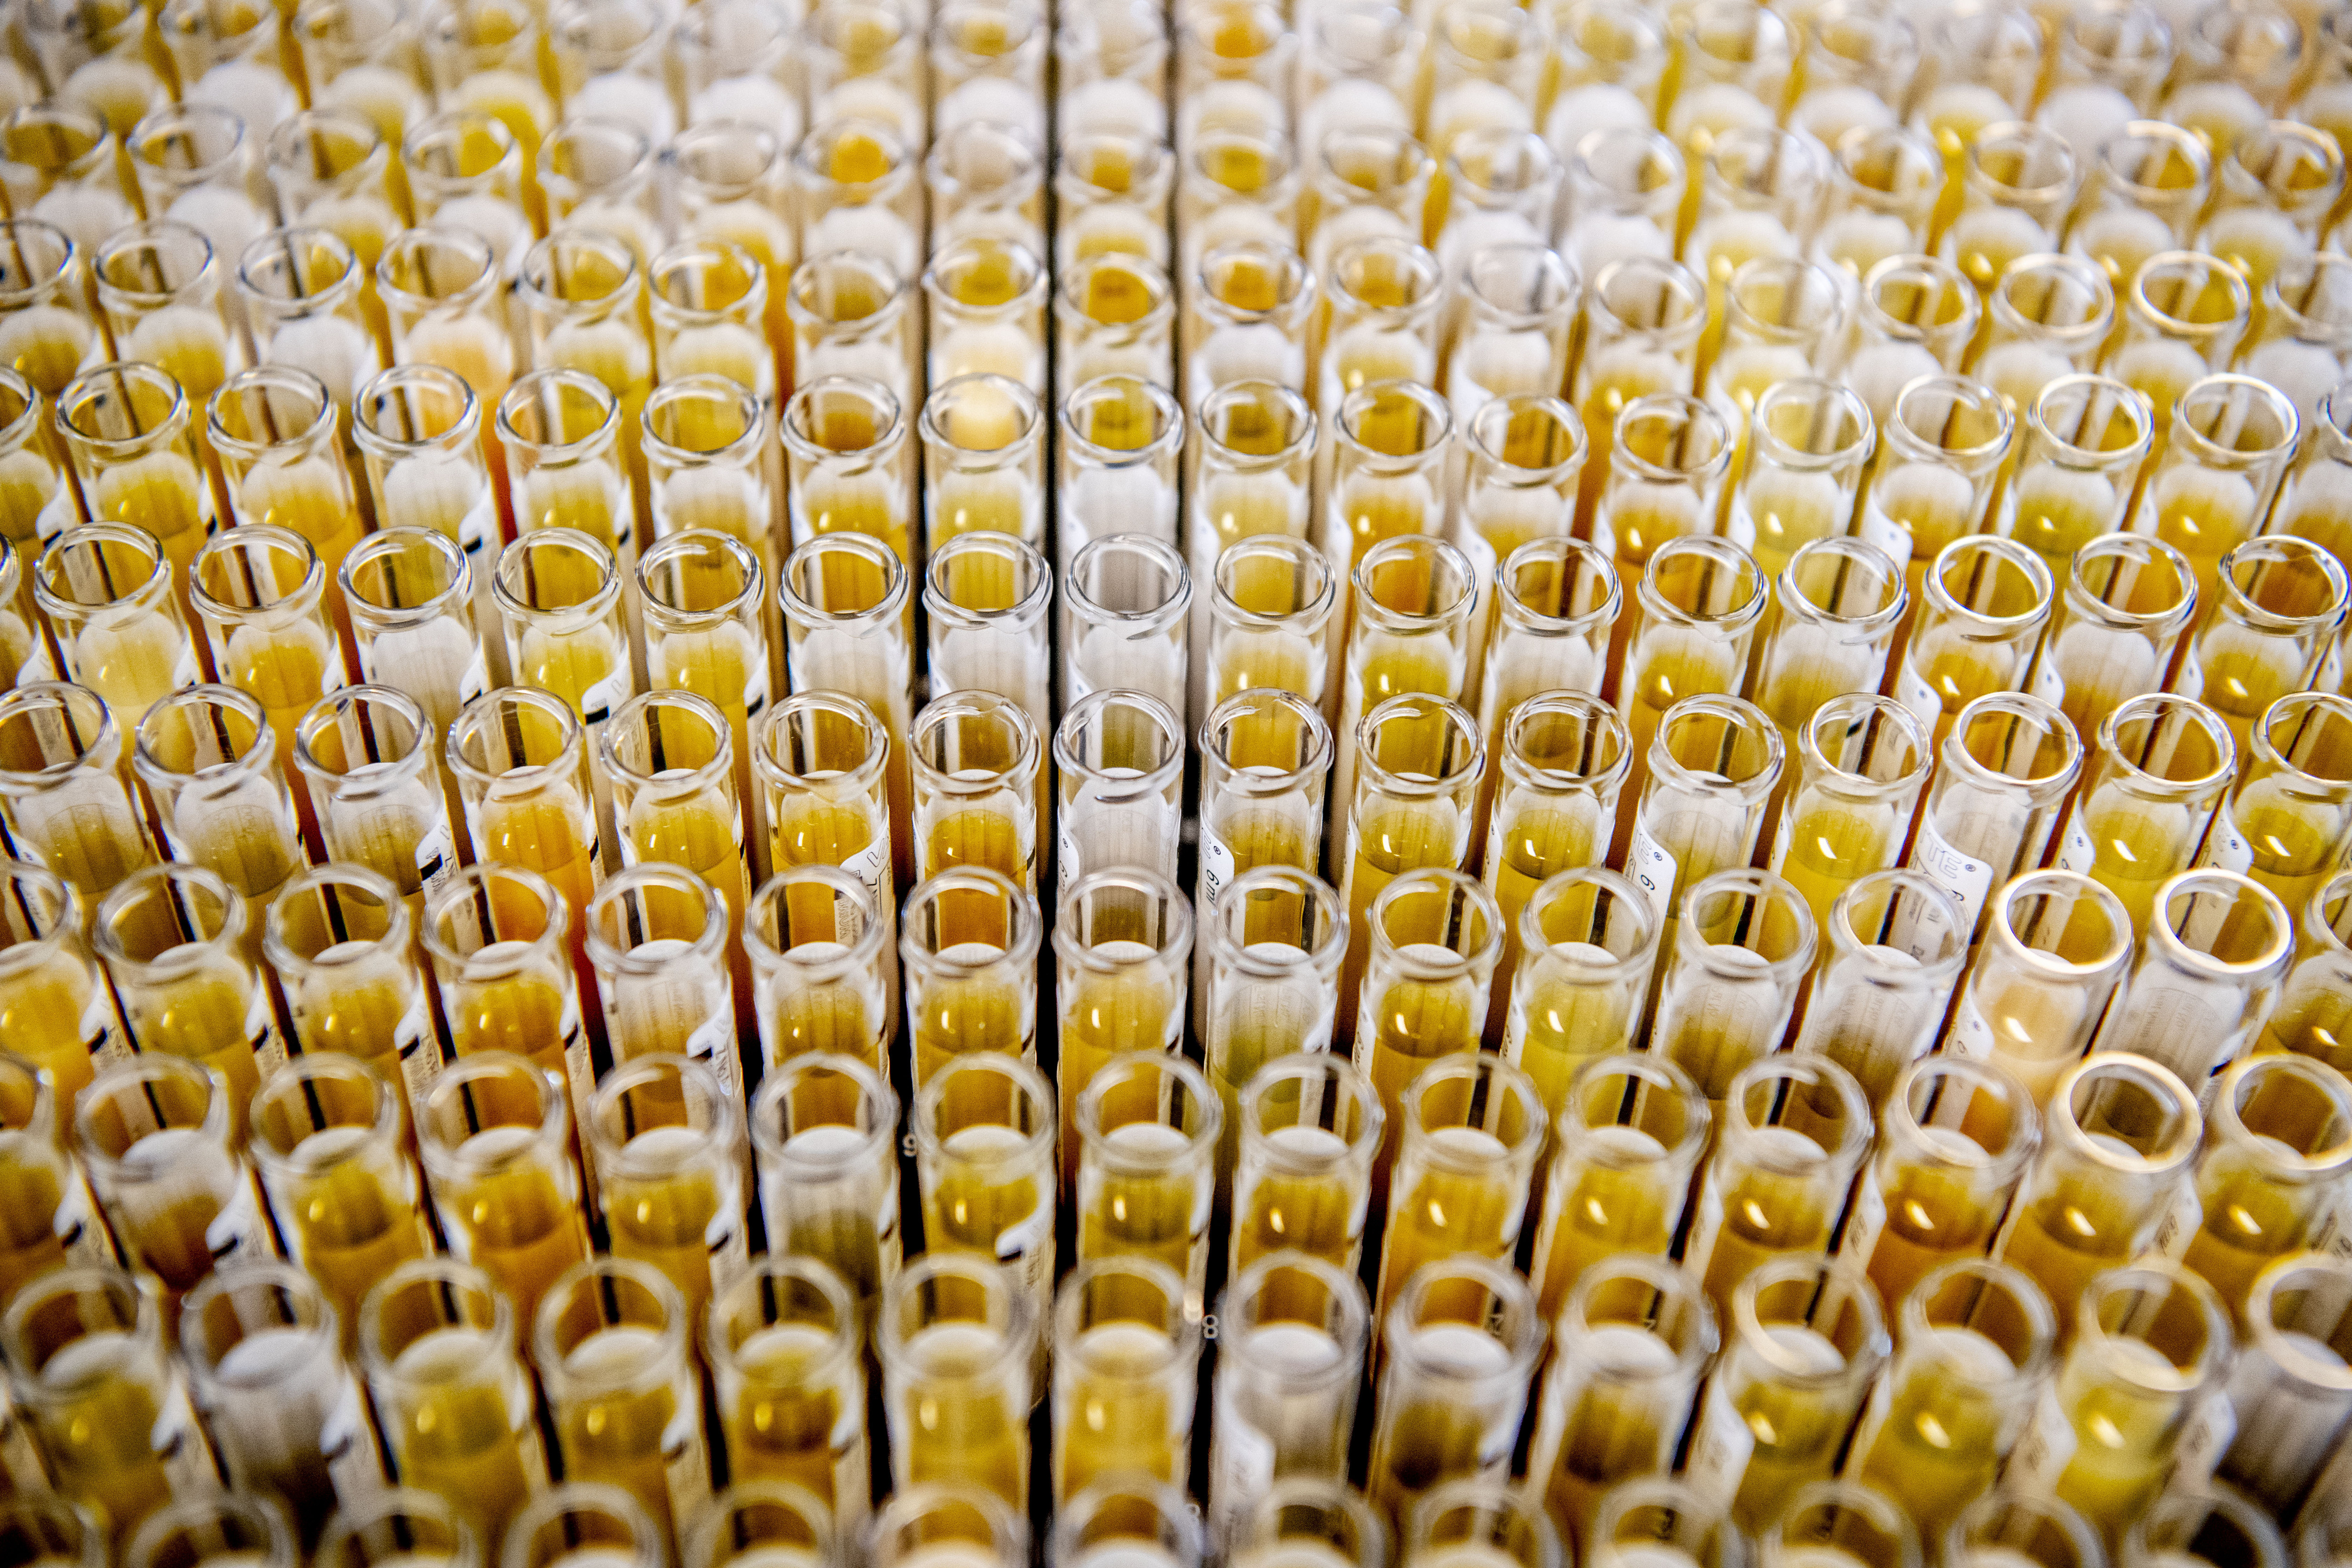 Test tubes with blood samples seen at the lab center.